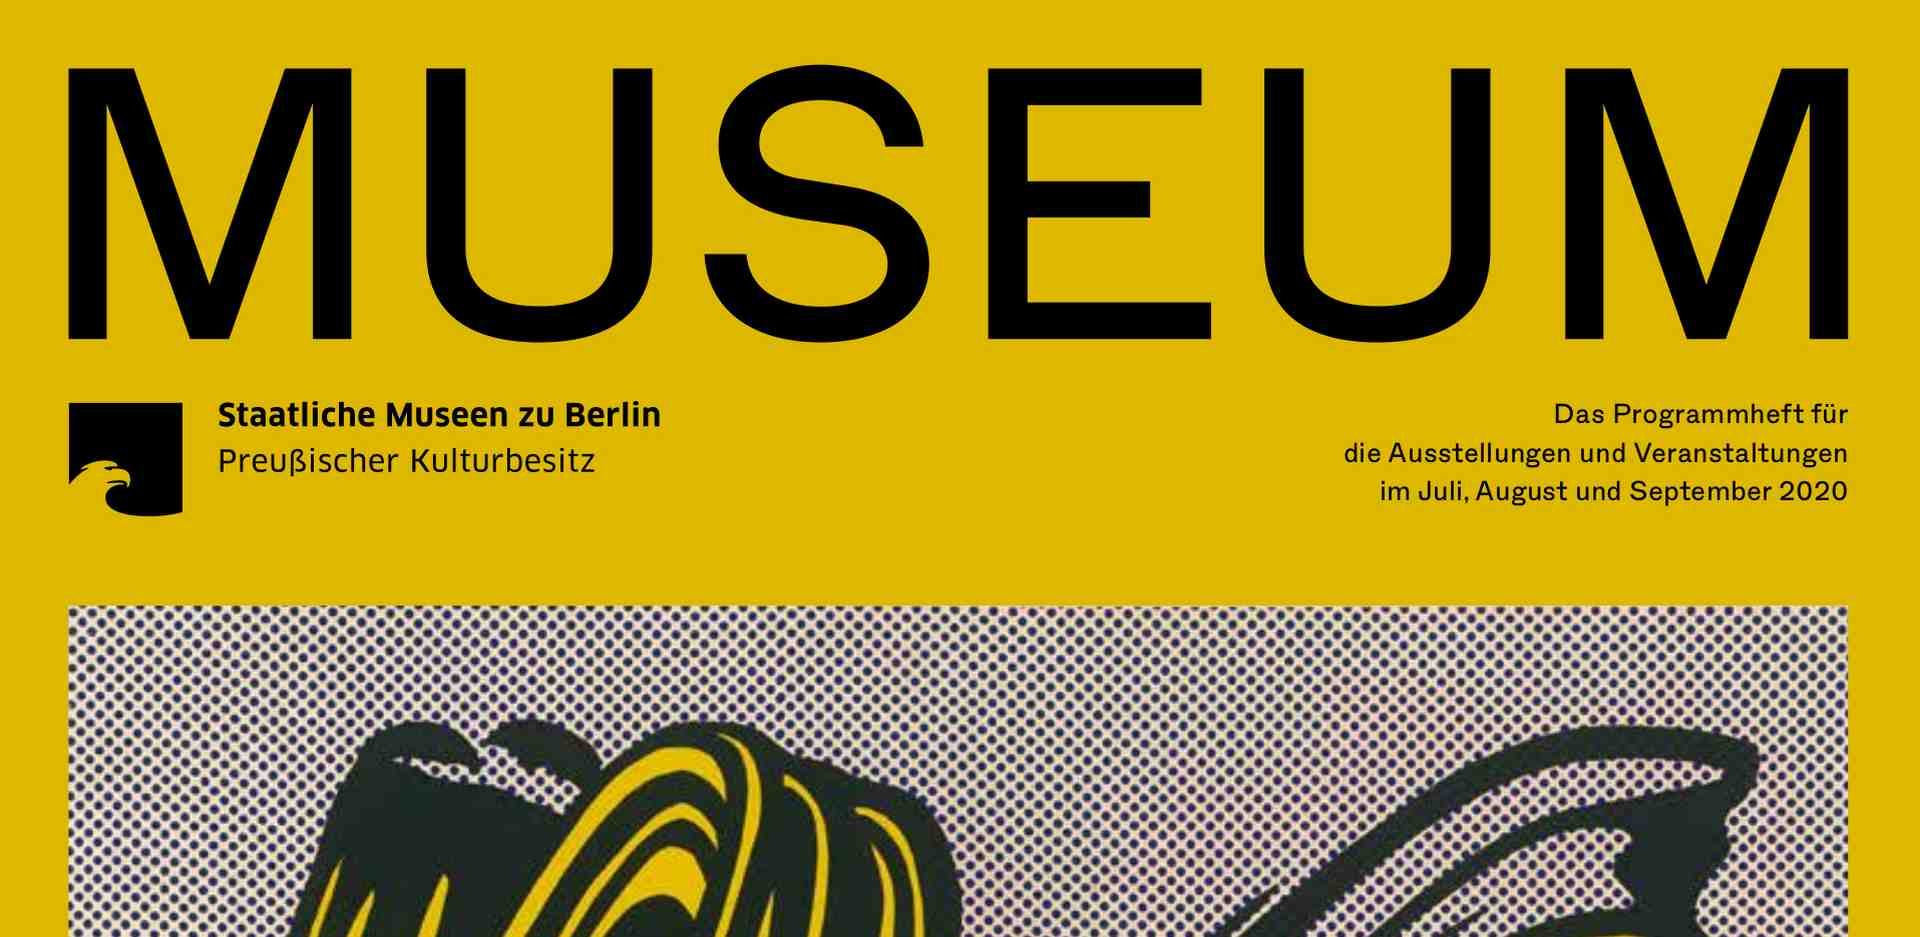 MUSEUM III 2020 – The program of the Staatlichen Museen zu Berlin is out now!